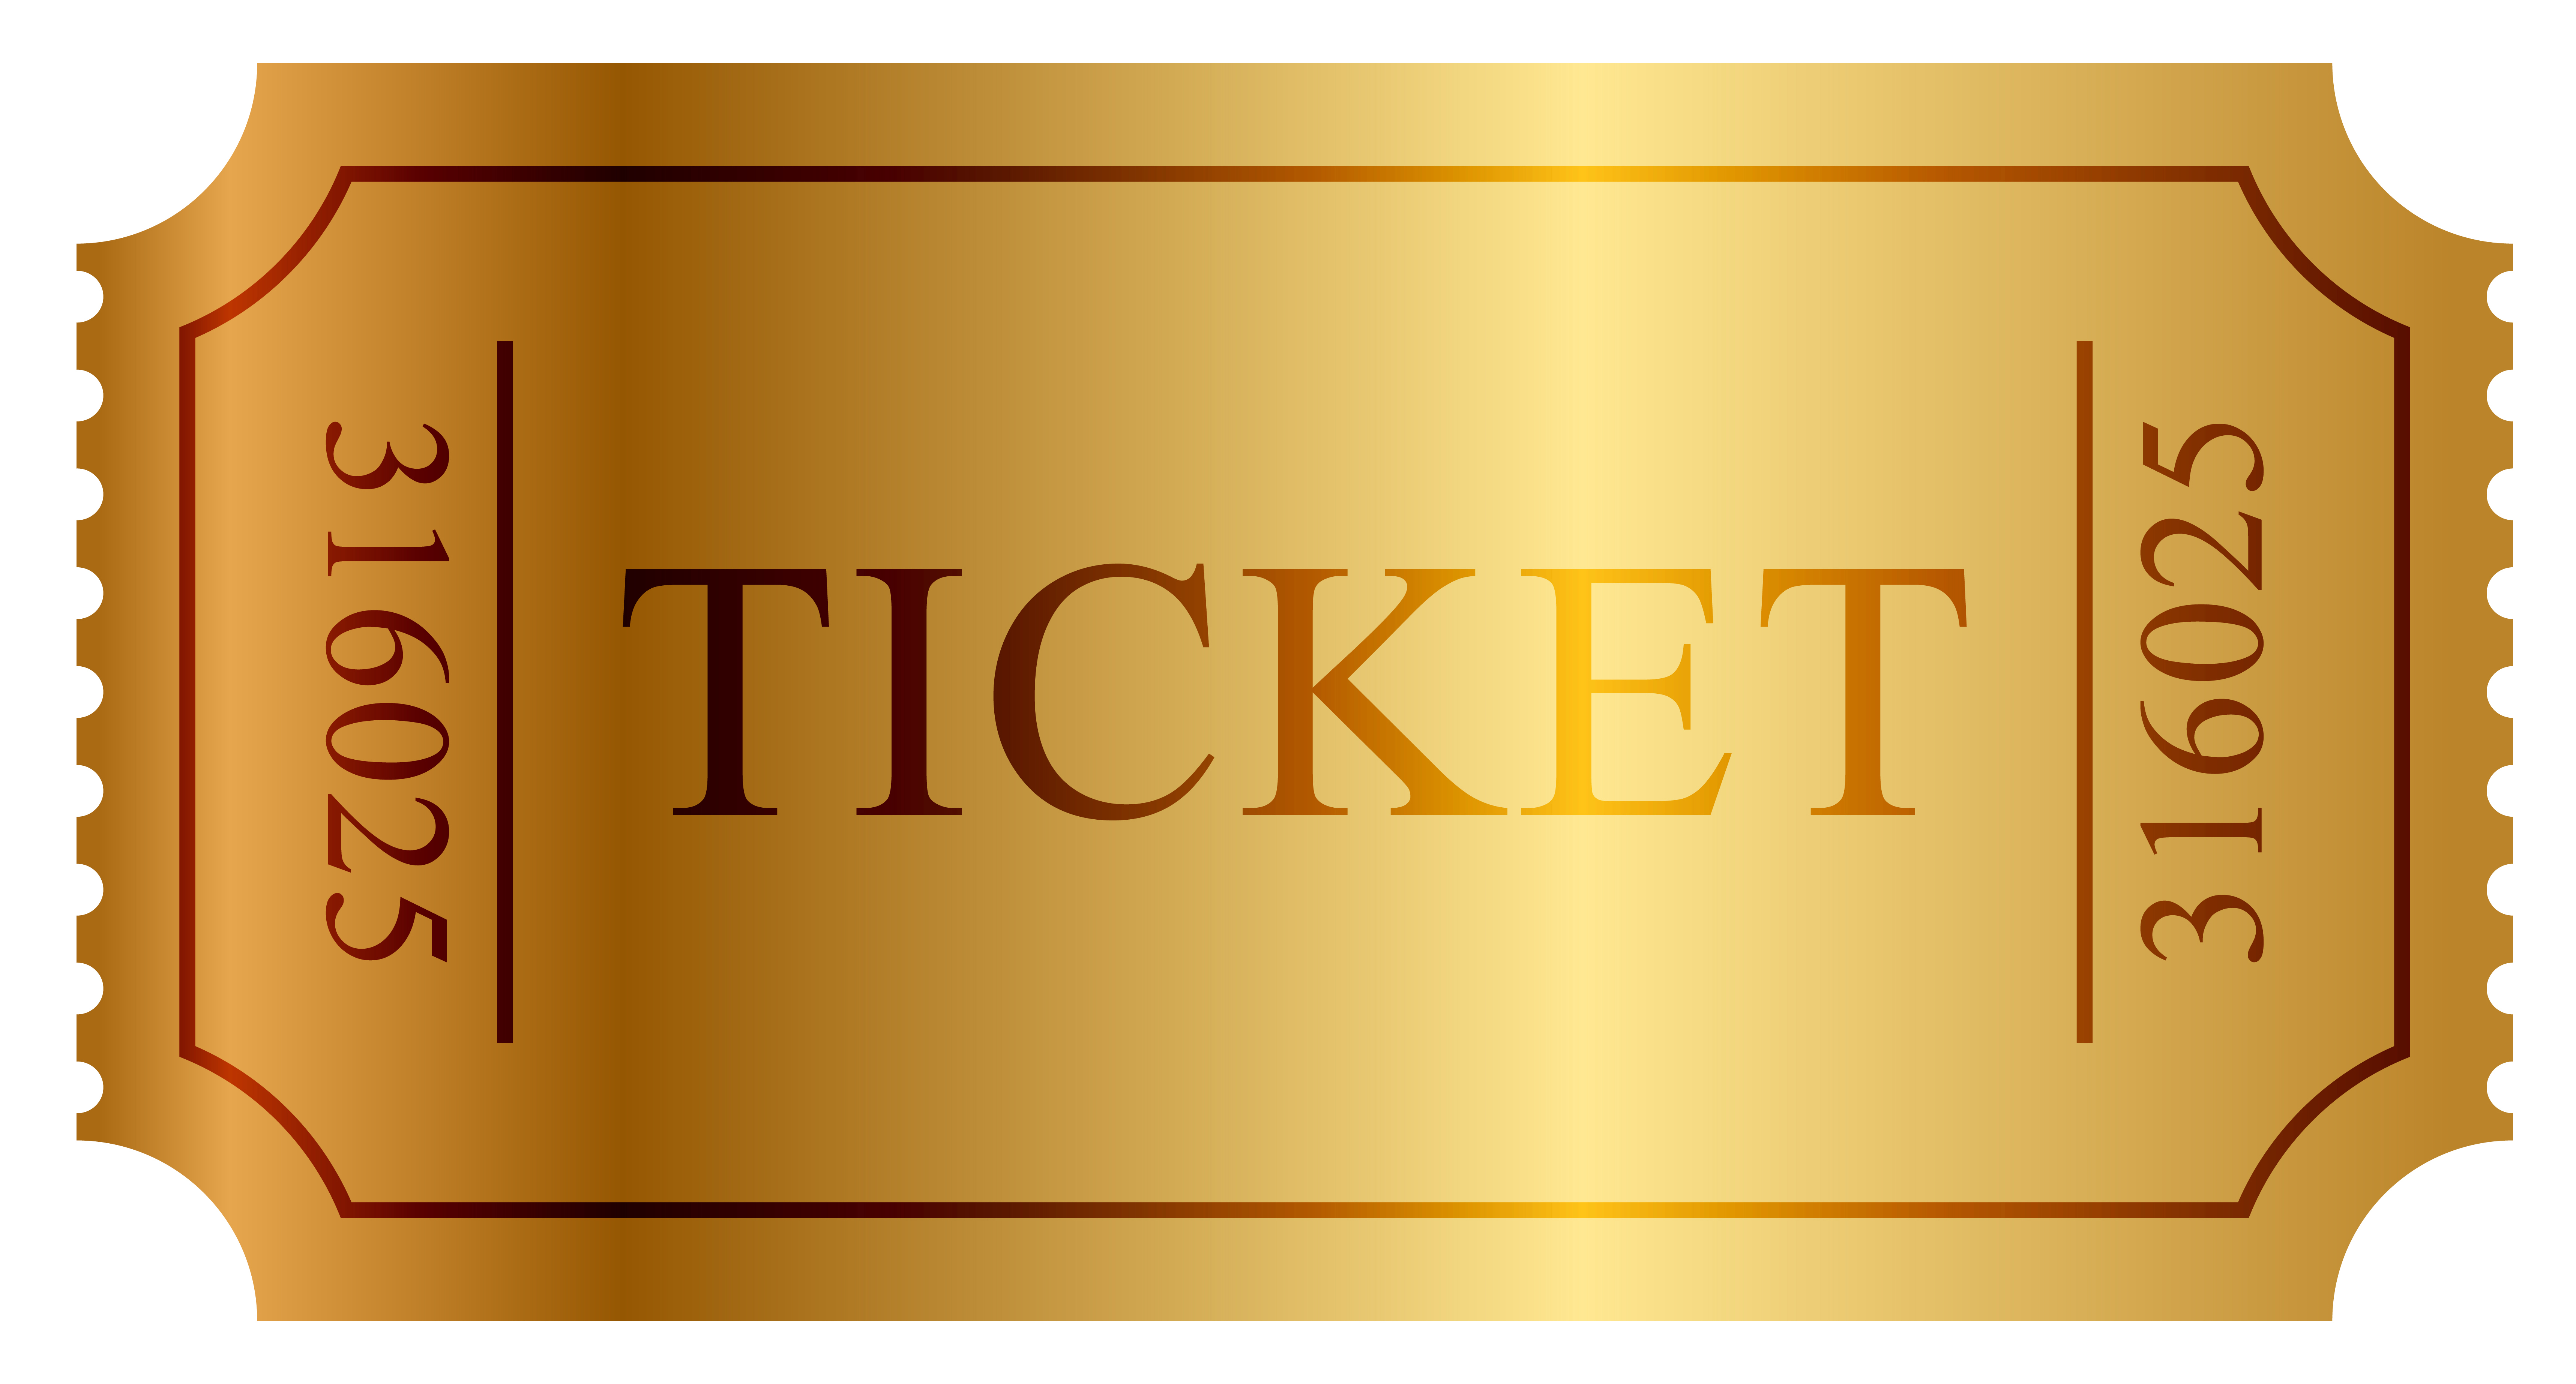 Aarp gold member clipart free banner free Get Your Free Tickets to the Second Wind Tour in Chicago! ? AARP ... banner free